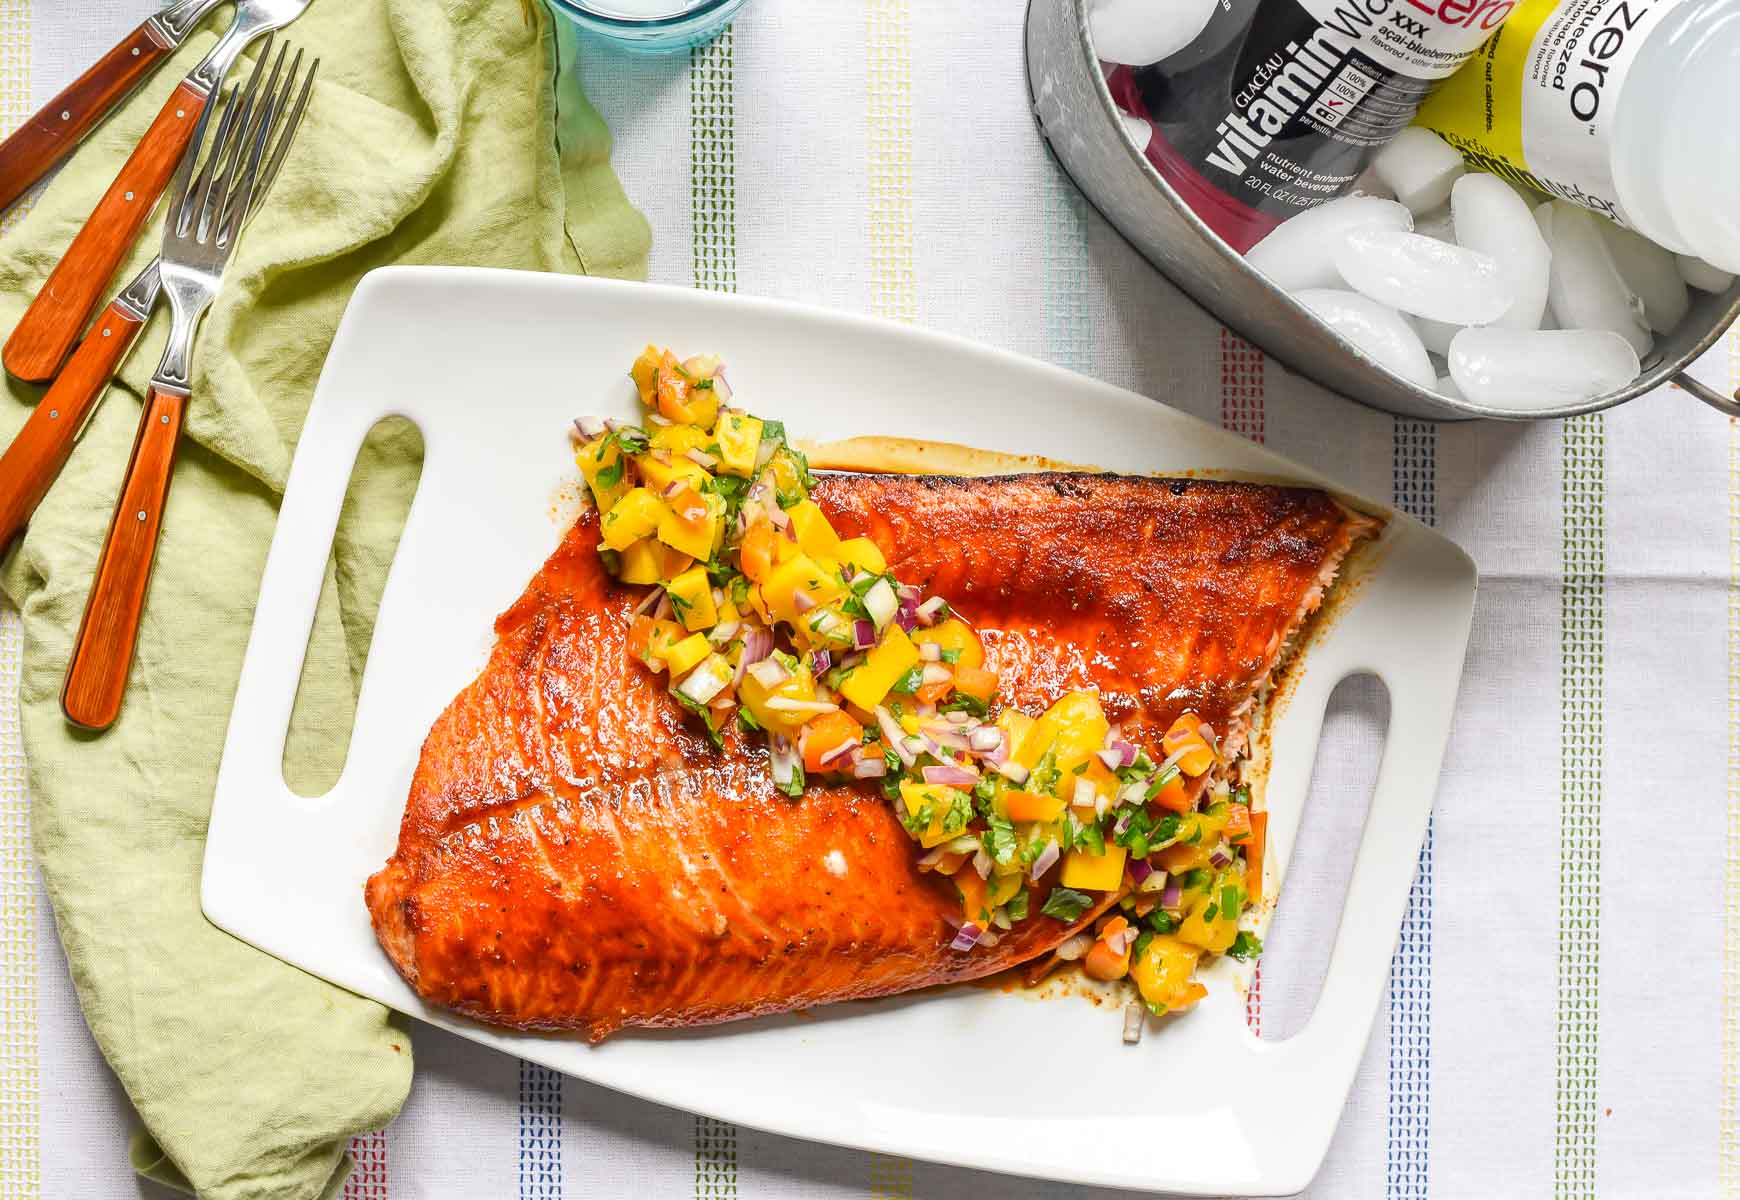 Grilled Salmon with Mango Salsa uses a foil packet to keep the salmon moist and tender!